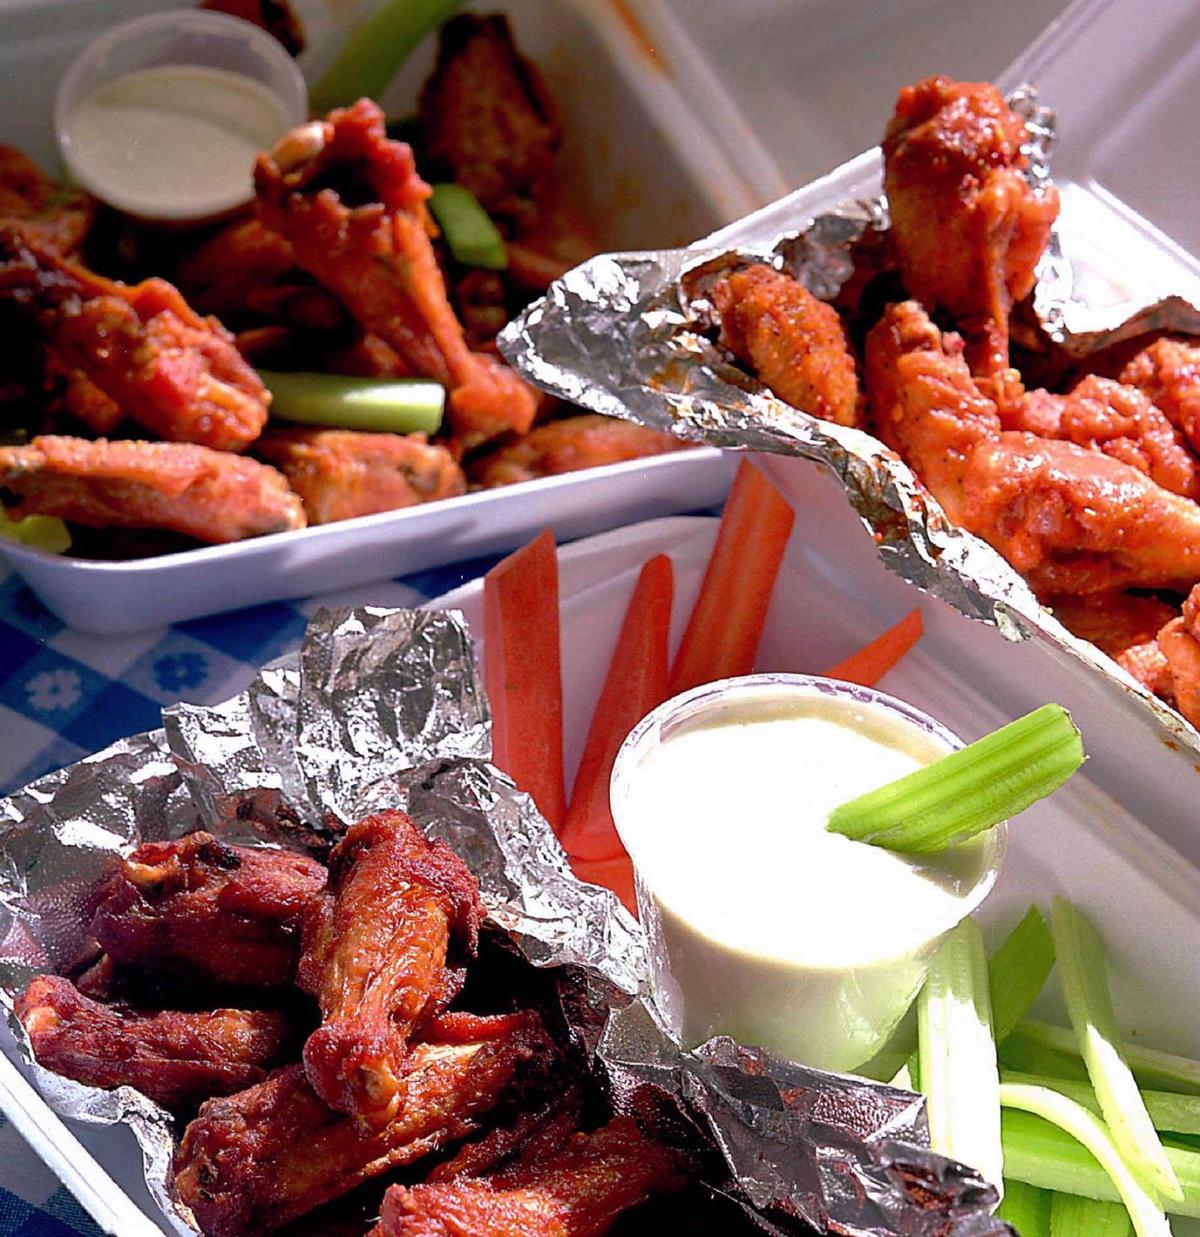 Tim S Top Five What Makes A Good Chicken Wing Tim S Top 5